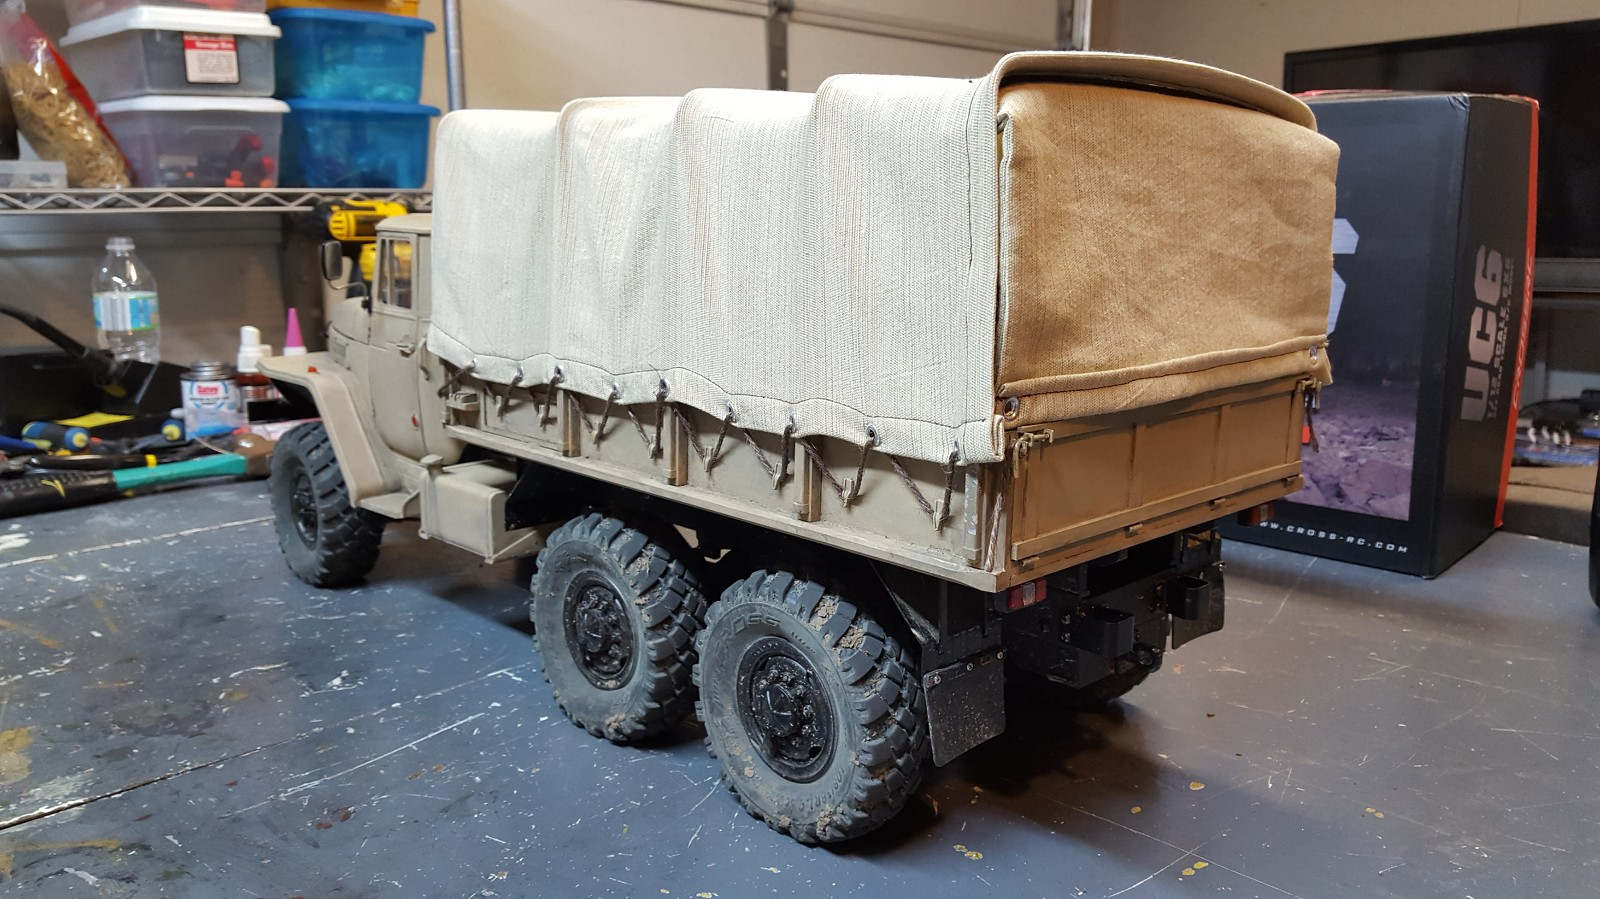 CROSS RC UC6 6x6 Ural Truck - RC Truck and Construction